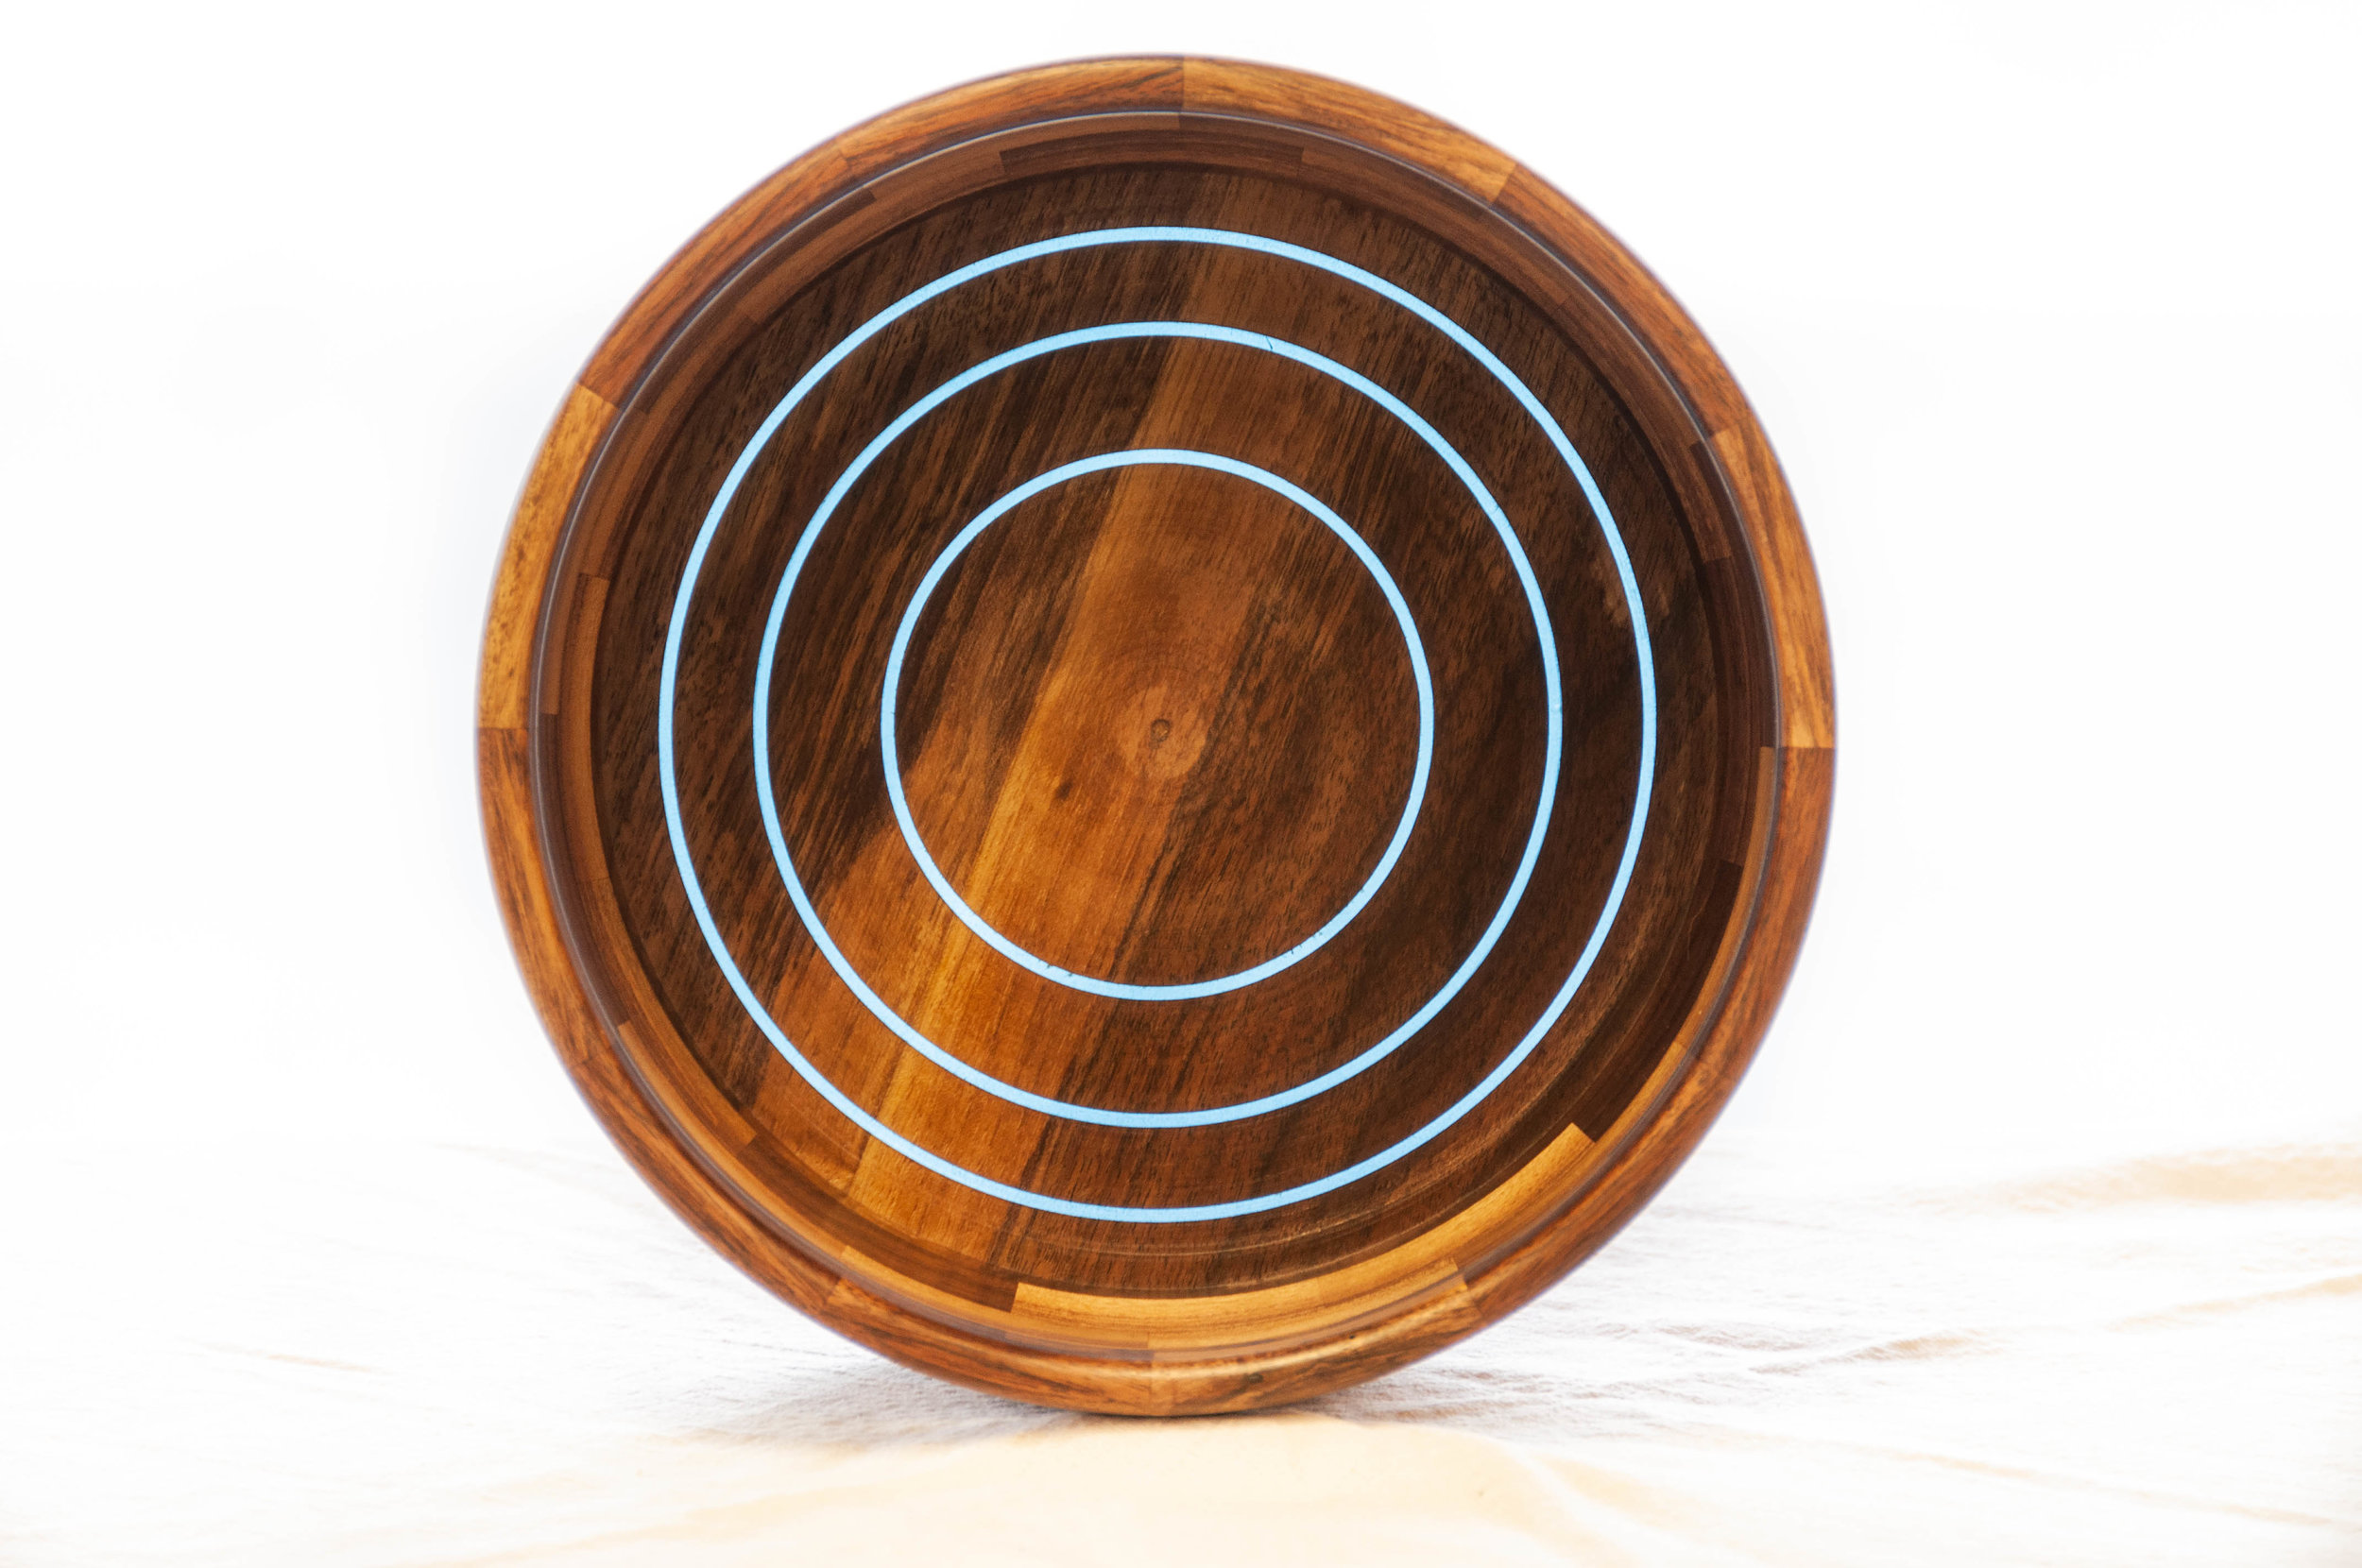 RJC Wood Creations - WoodResin Bowl Blue 4.jpg